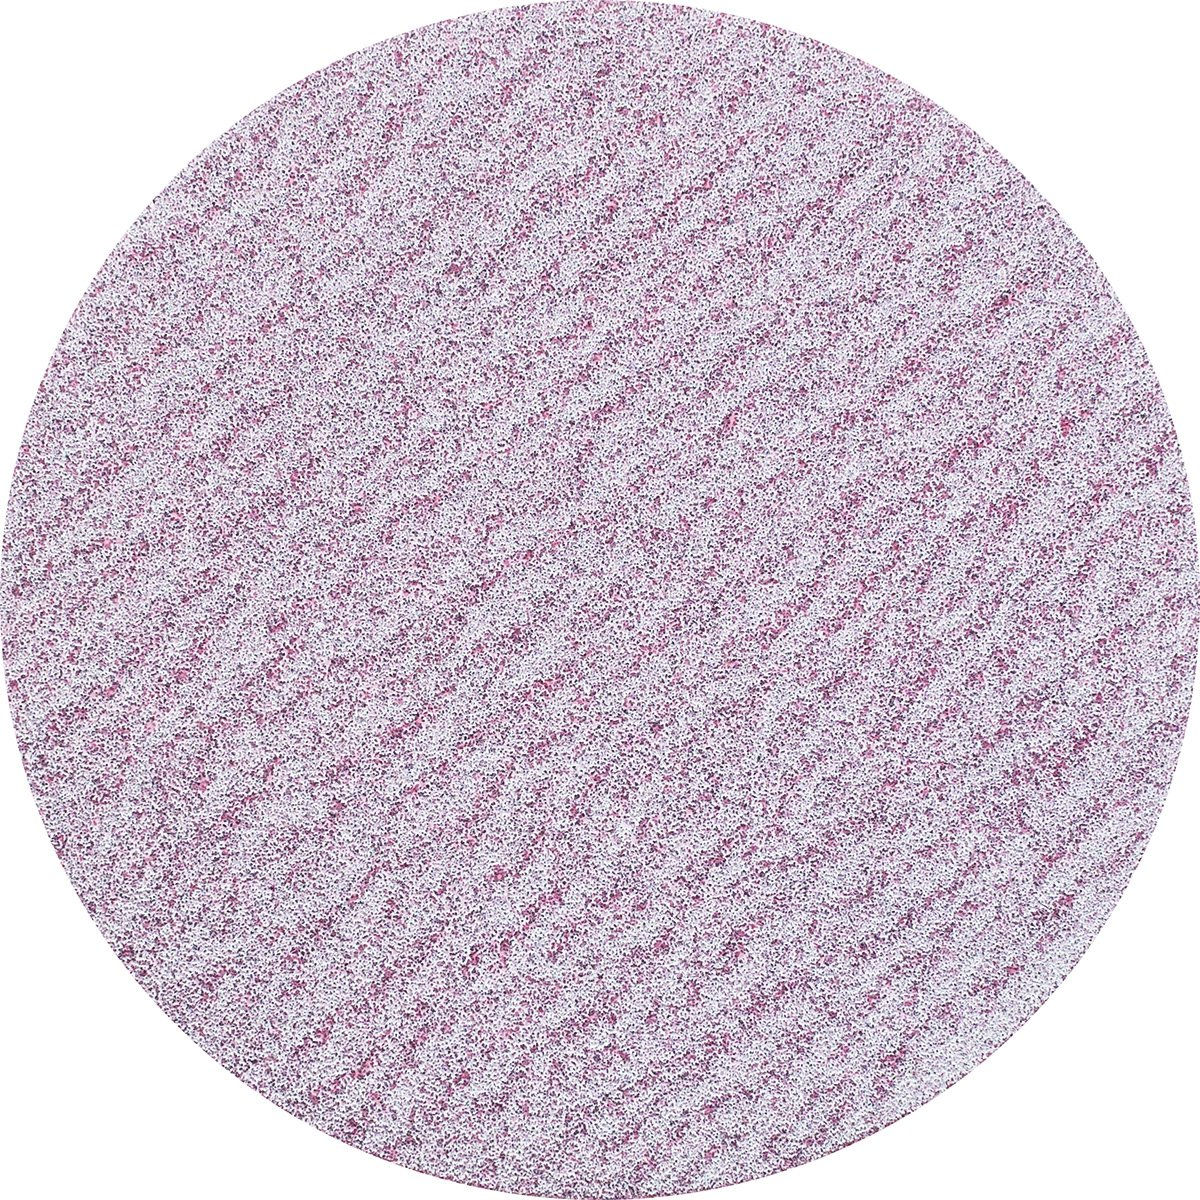 United Abrasives/SAIT 35404 180X 6A 5' PSA Disc